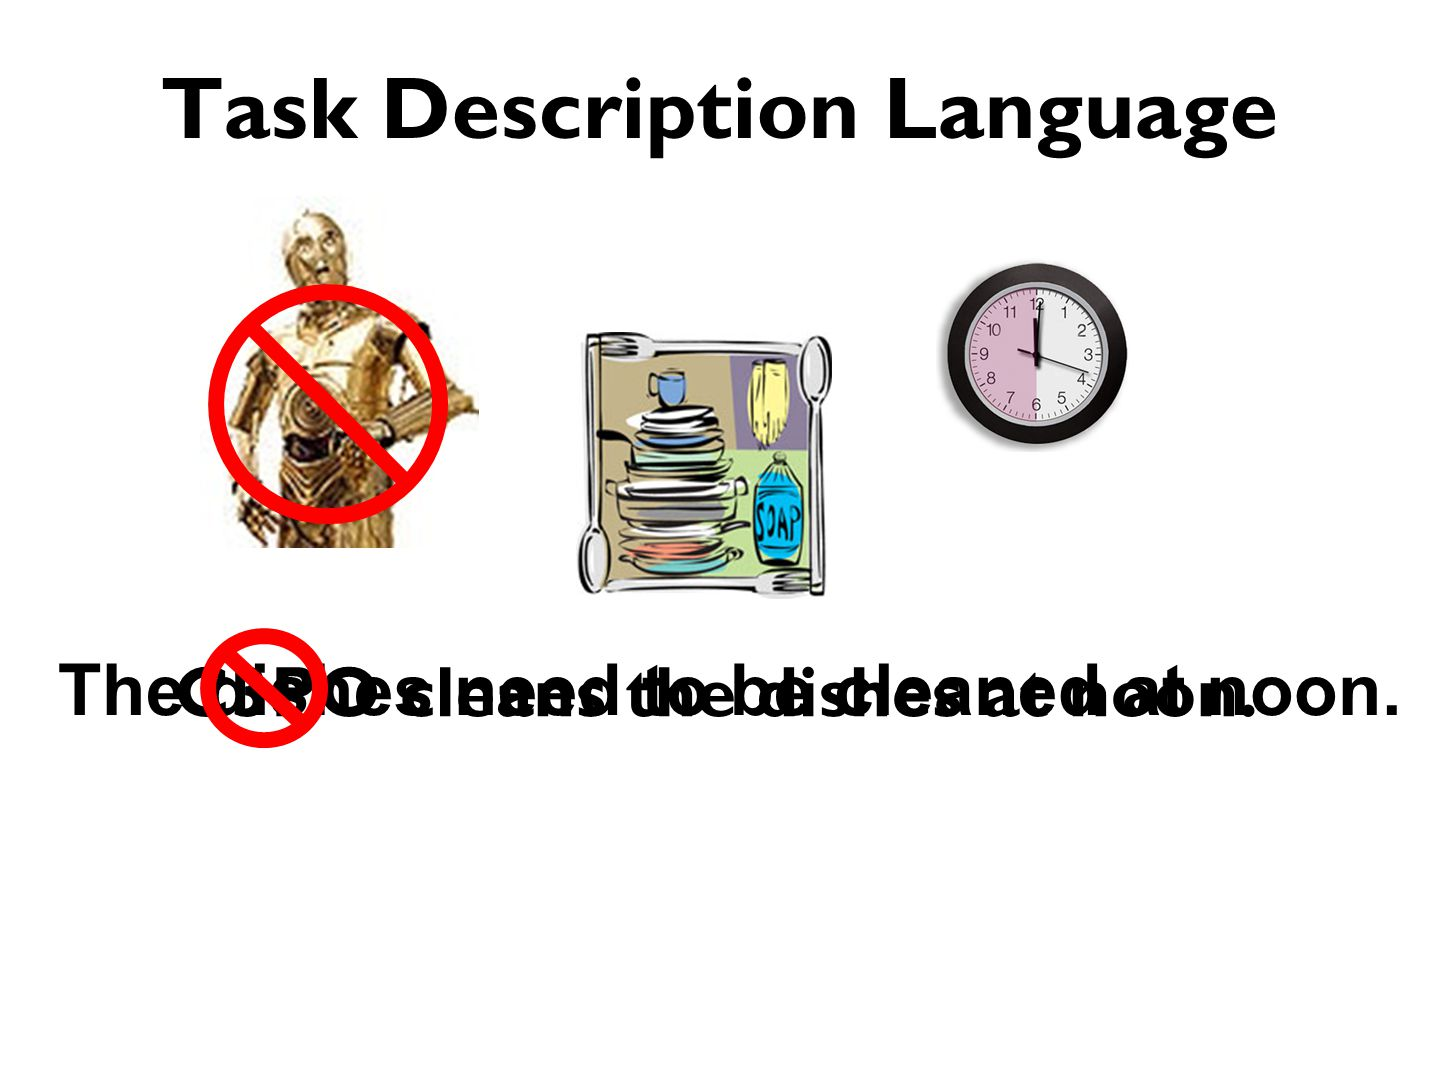 Task Description Language C3PO cleans the dishes at noon. The dishes need to be cleaned at noon.